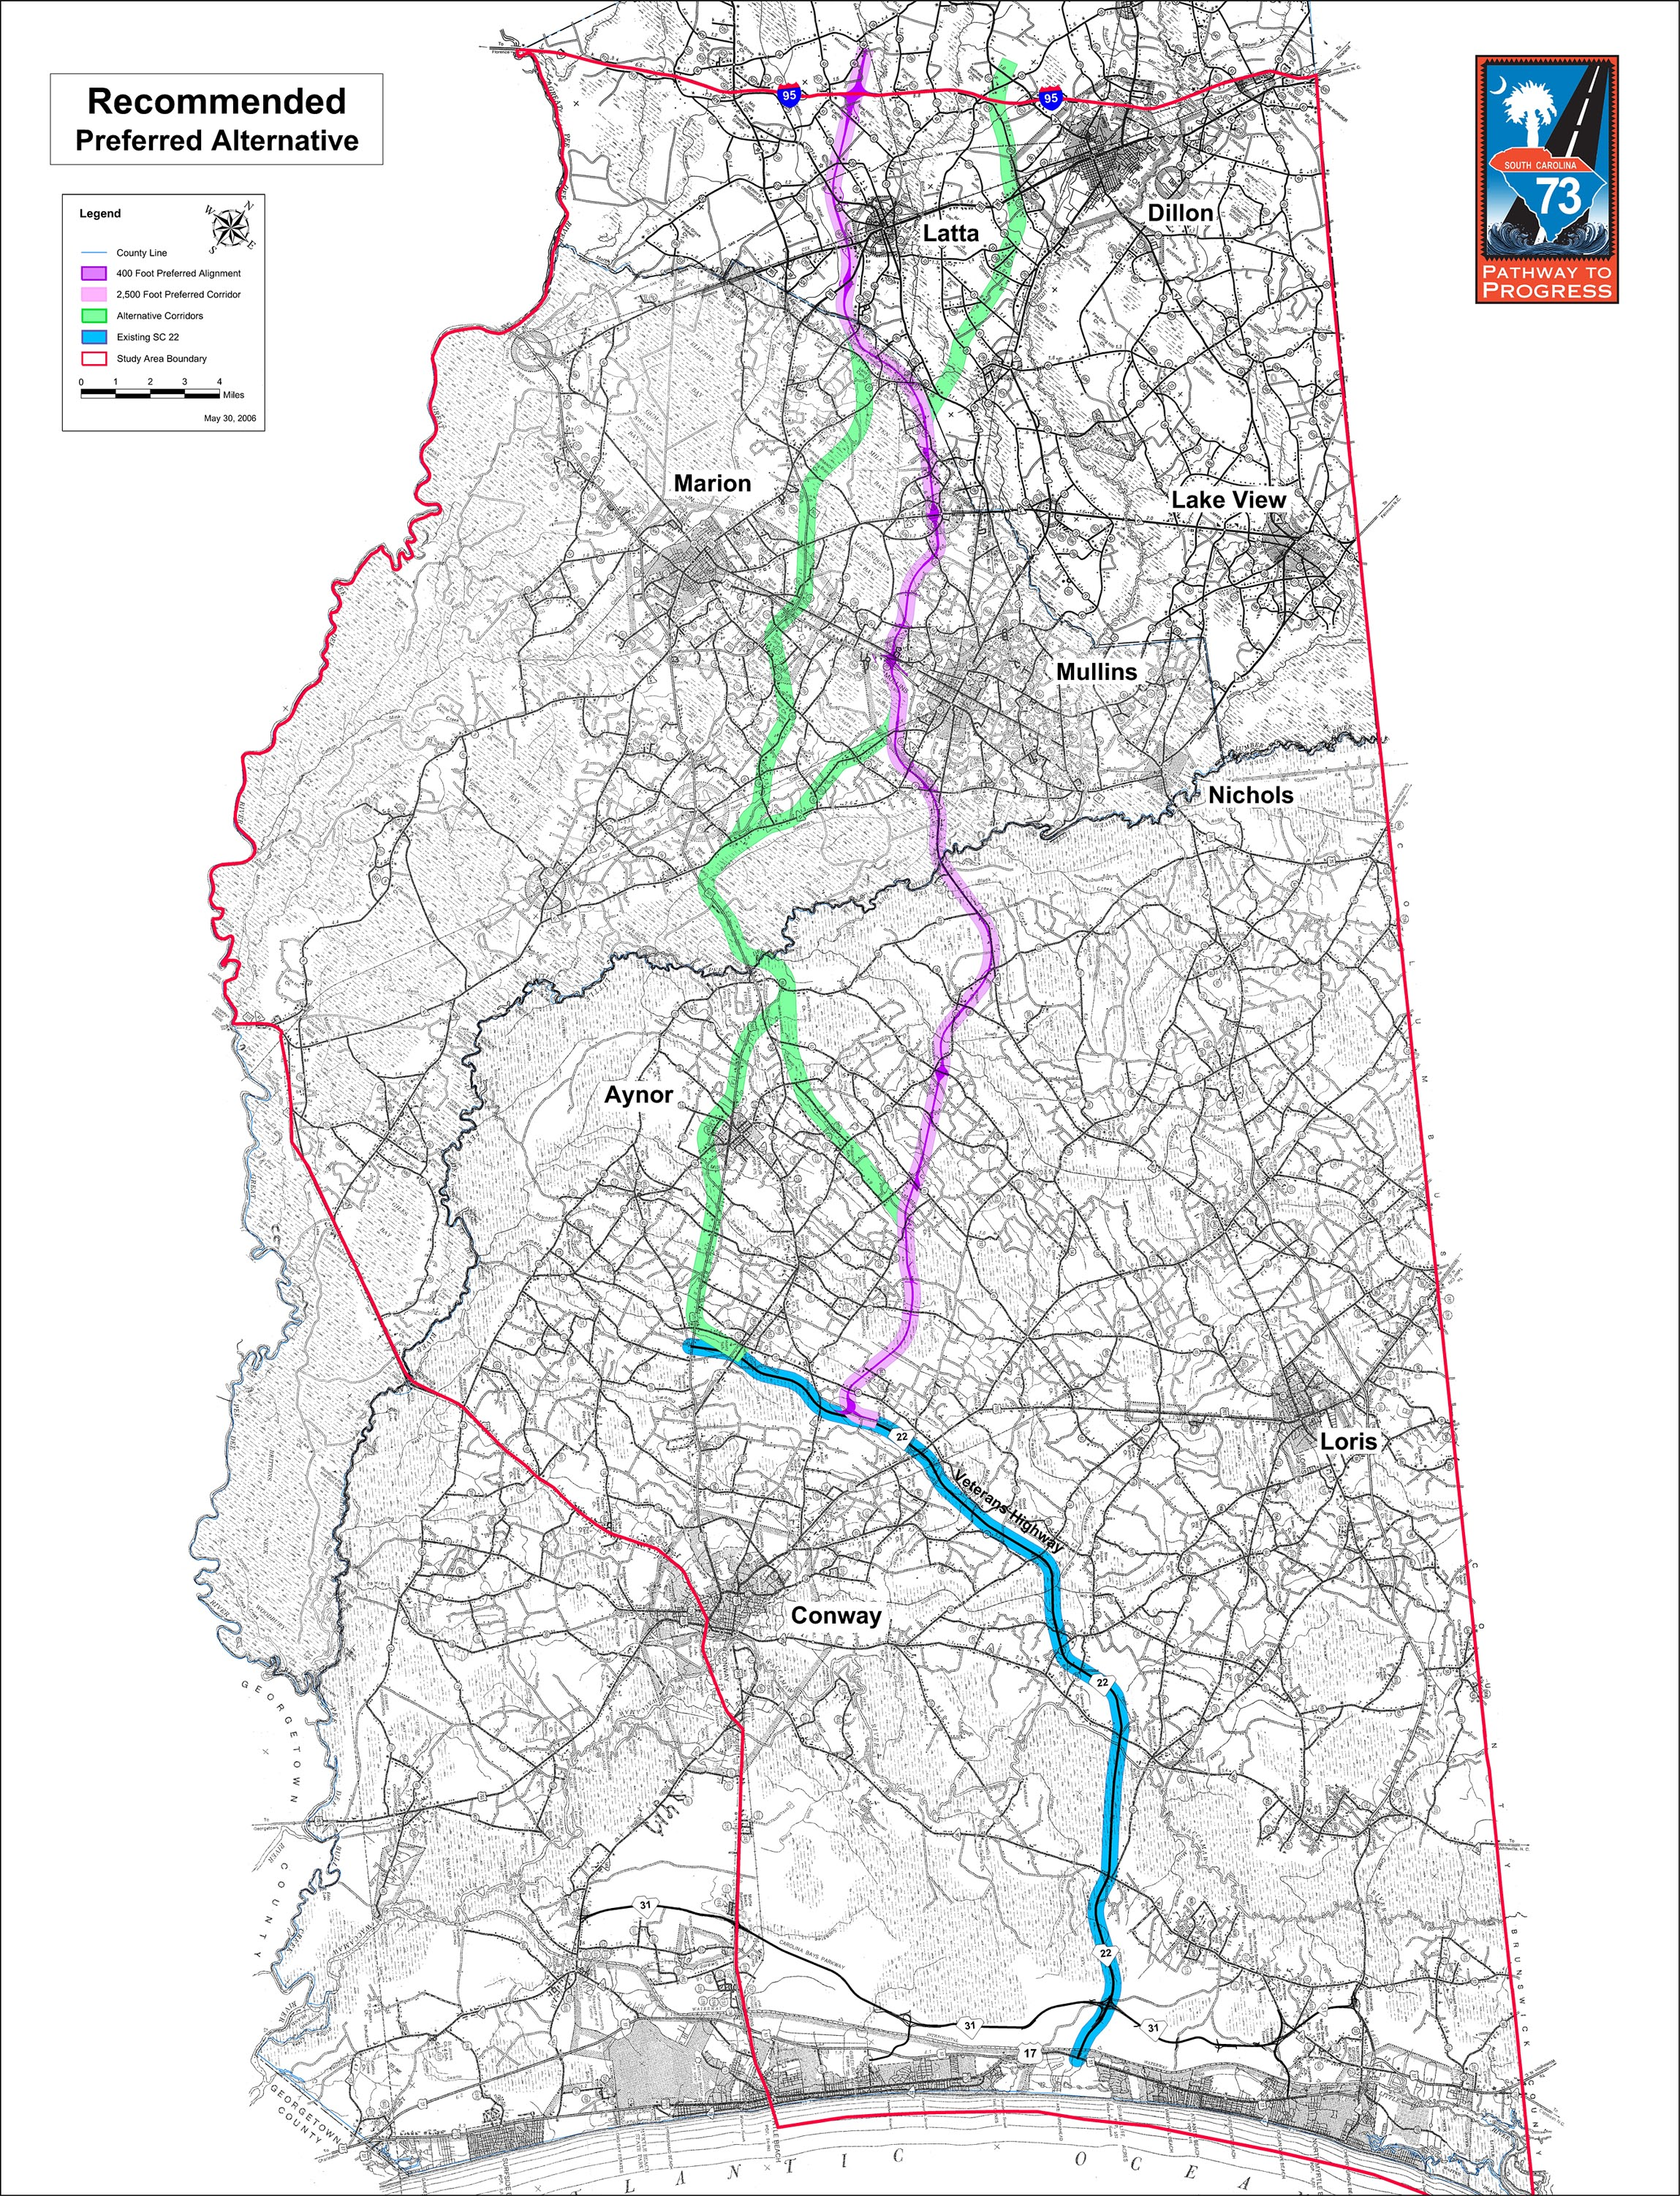 I Map on cooper's point south carolina map, i-40 map, rt 74 north carolina map, conway bypass map, hwy 74 nc map,